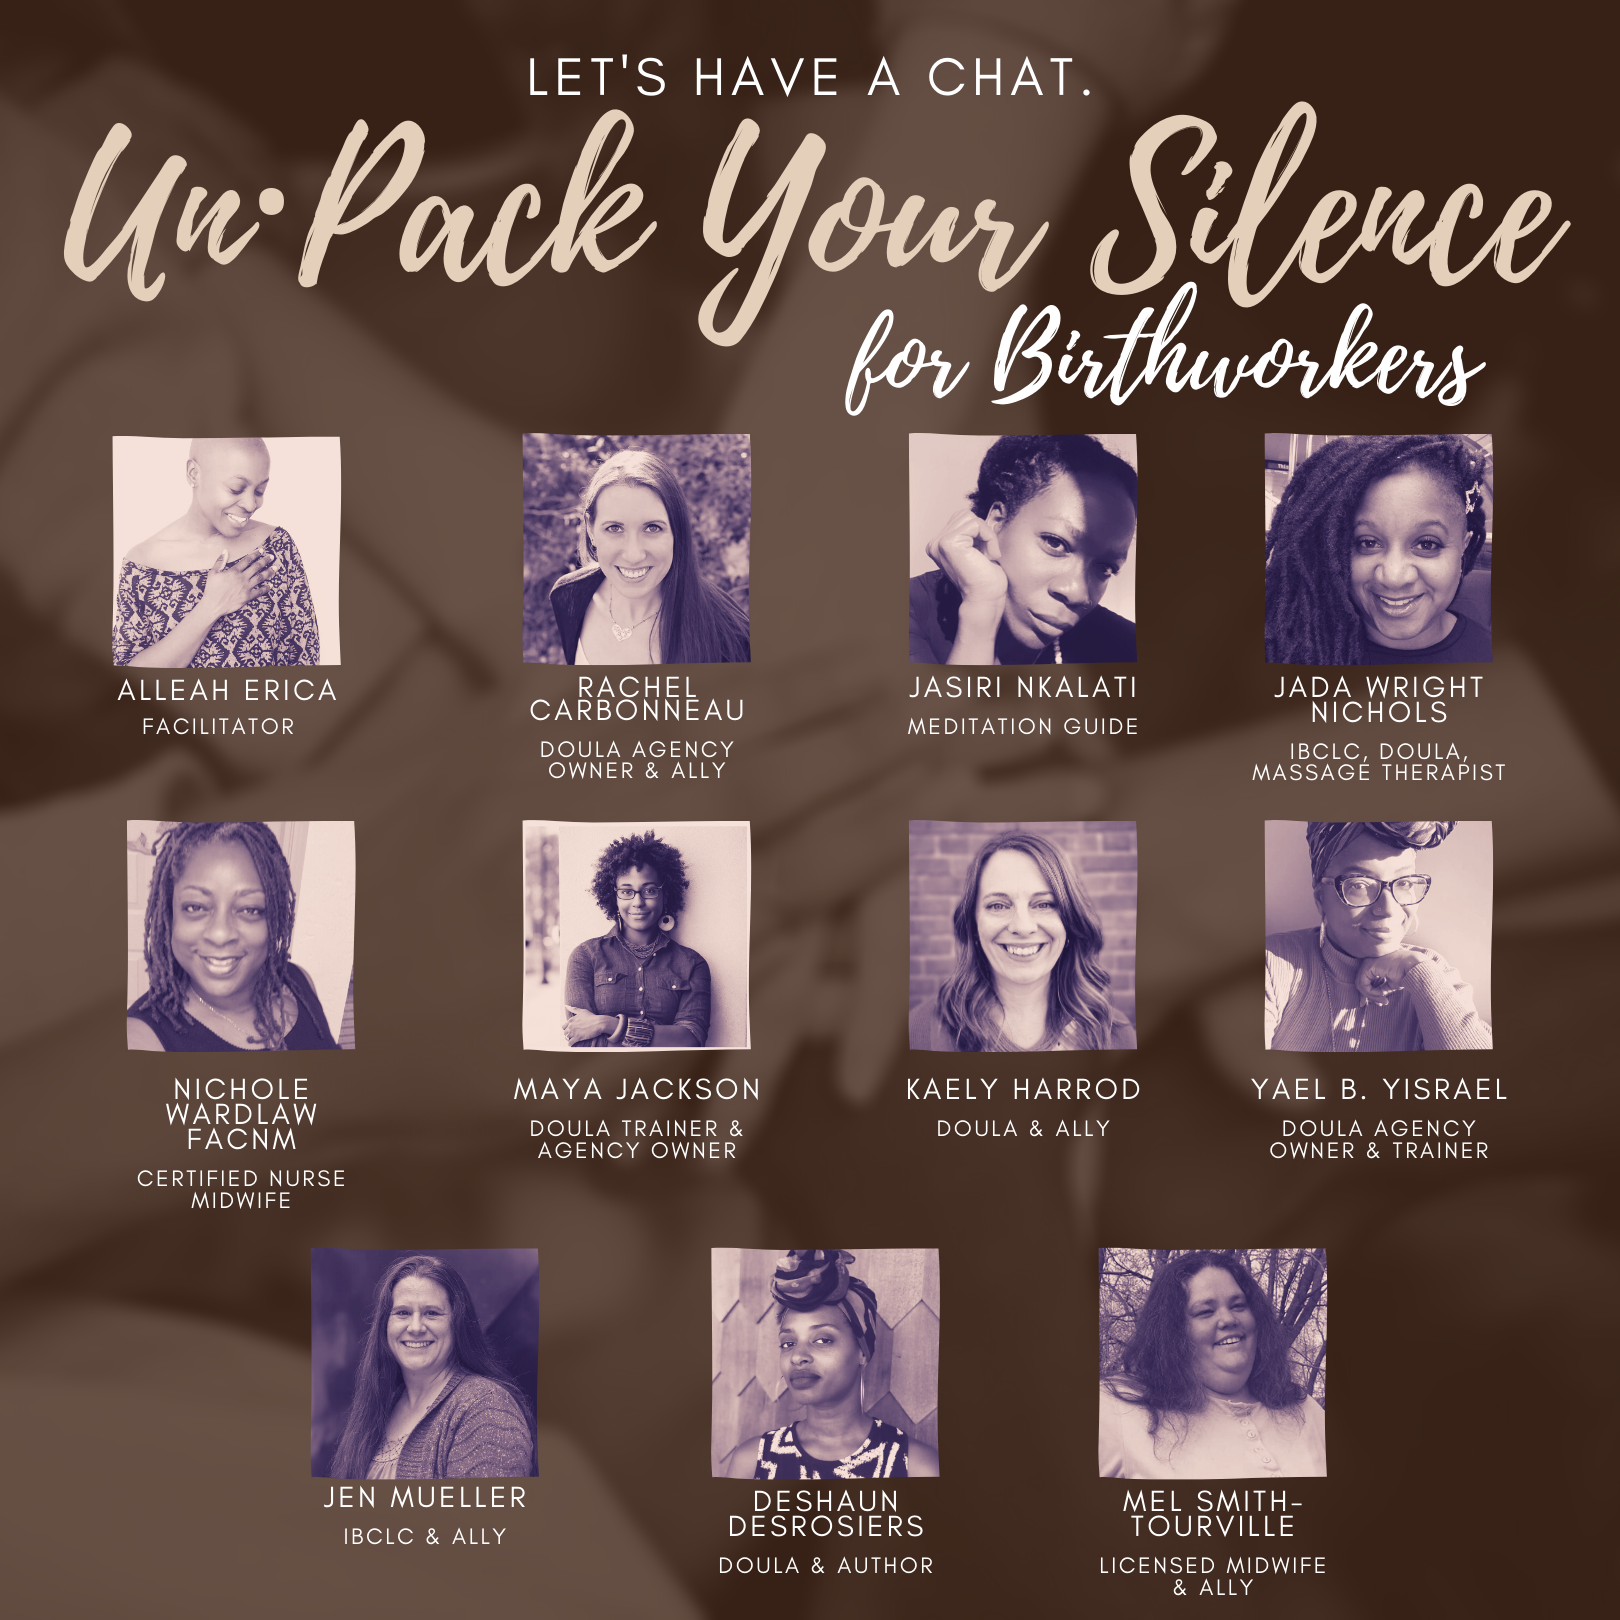 The Panellists of the un·Pack Your Silence for Birthworkers